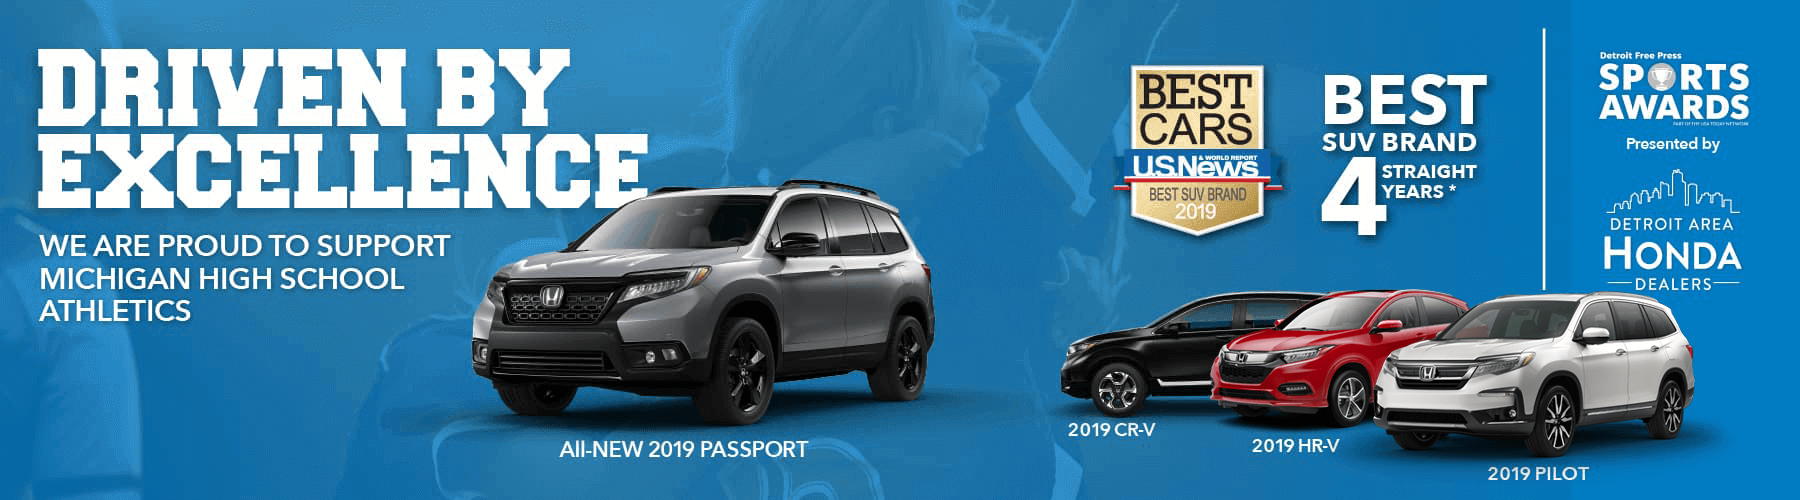 Honda 2019 Best SUV Brand Detroit Free Press Sports Awards Banner